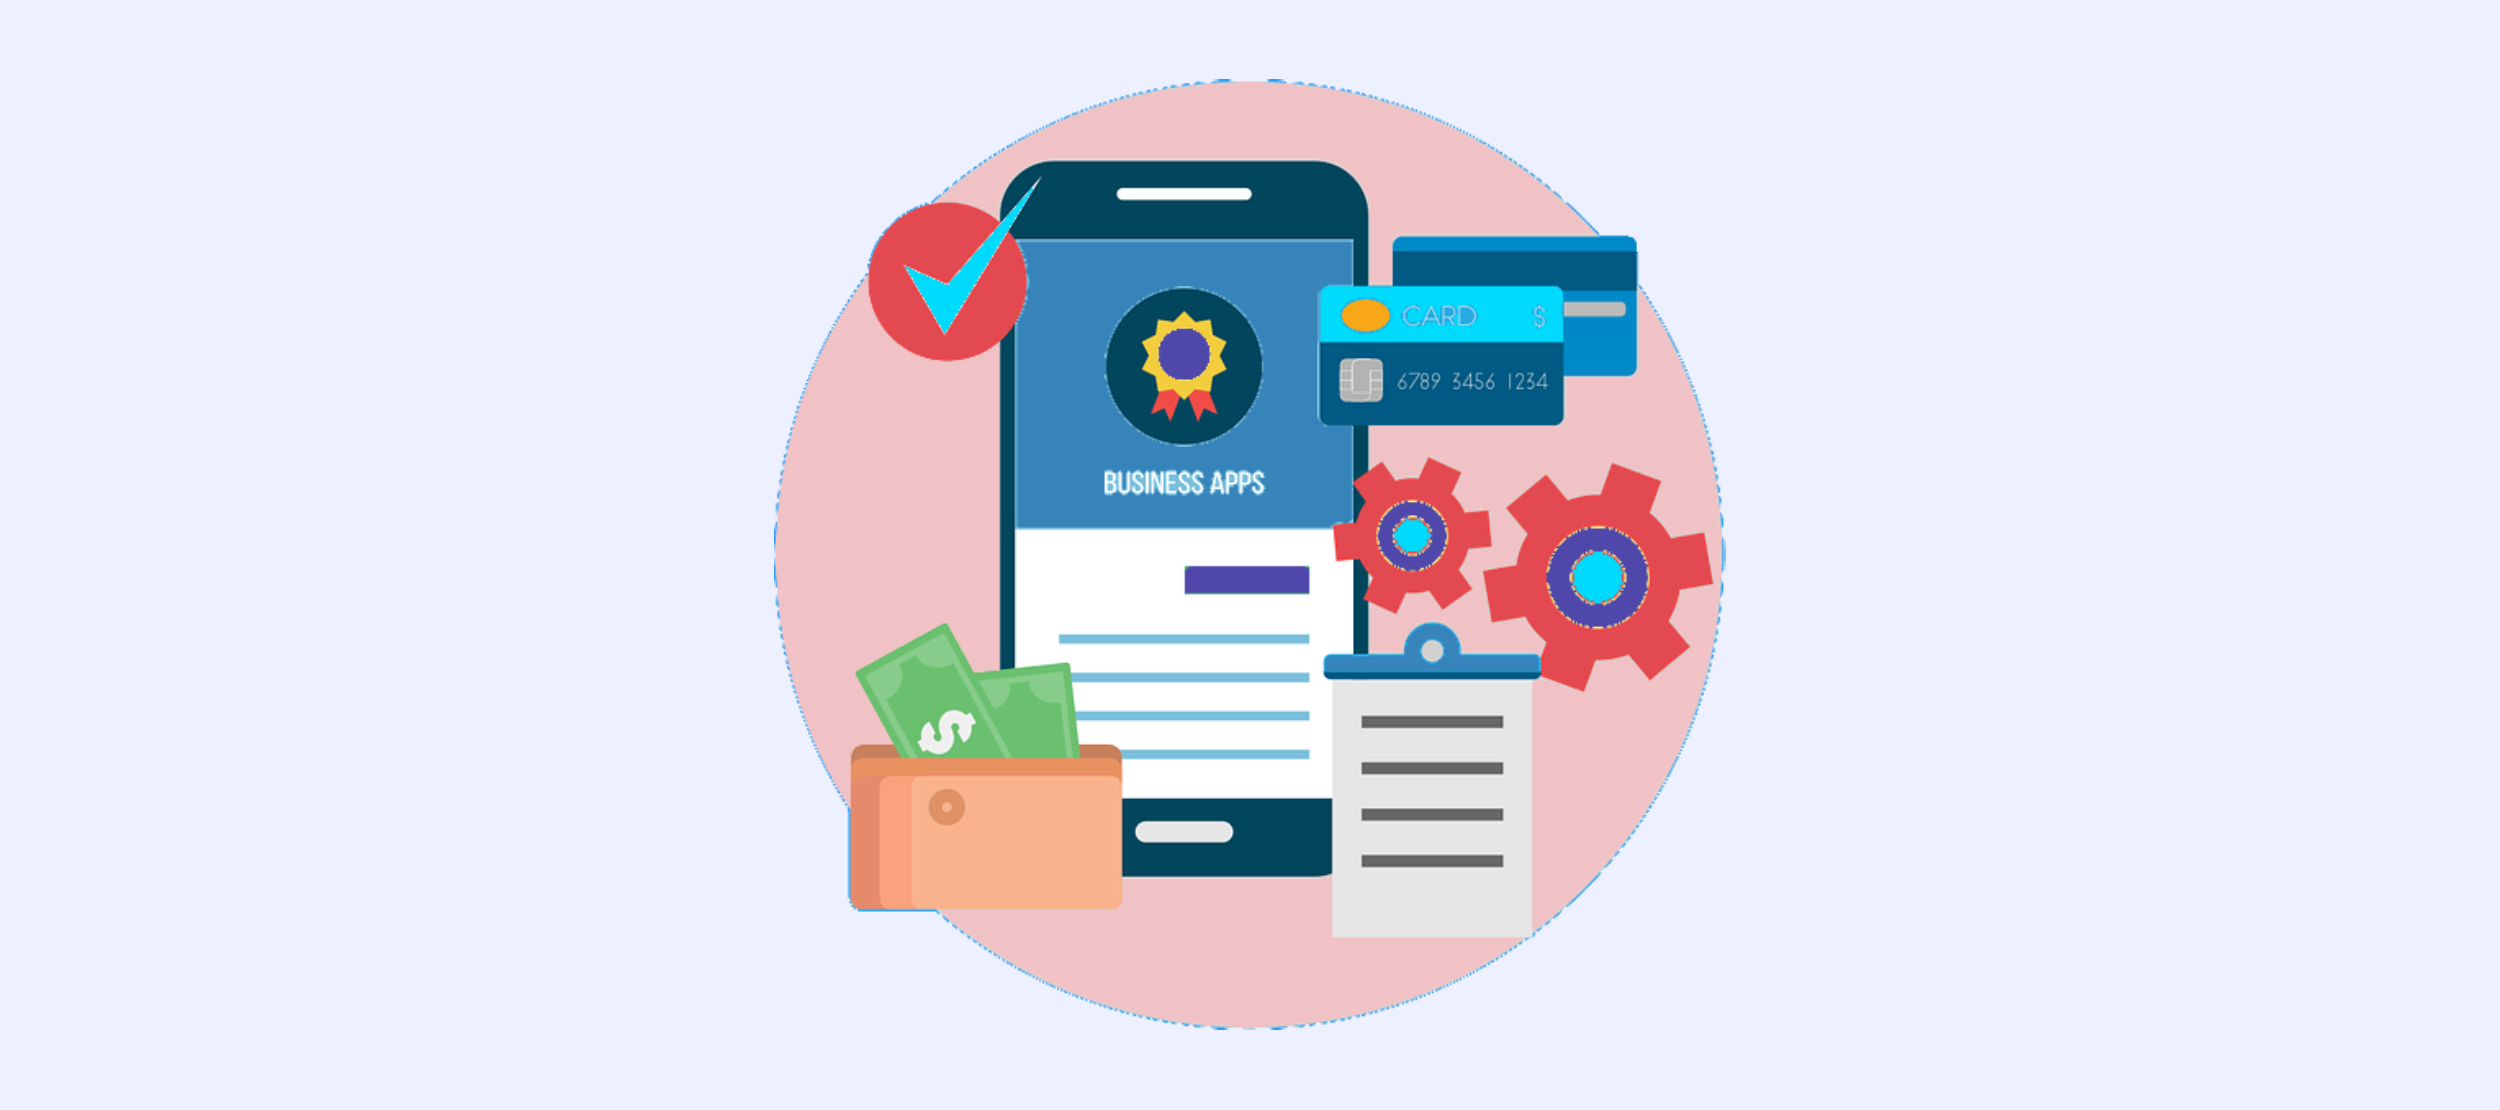 Best Digital Marketing Practices for Small Business Owners